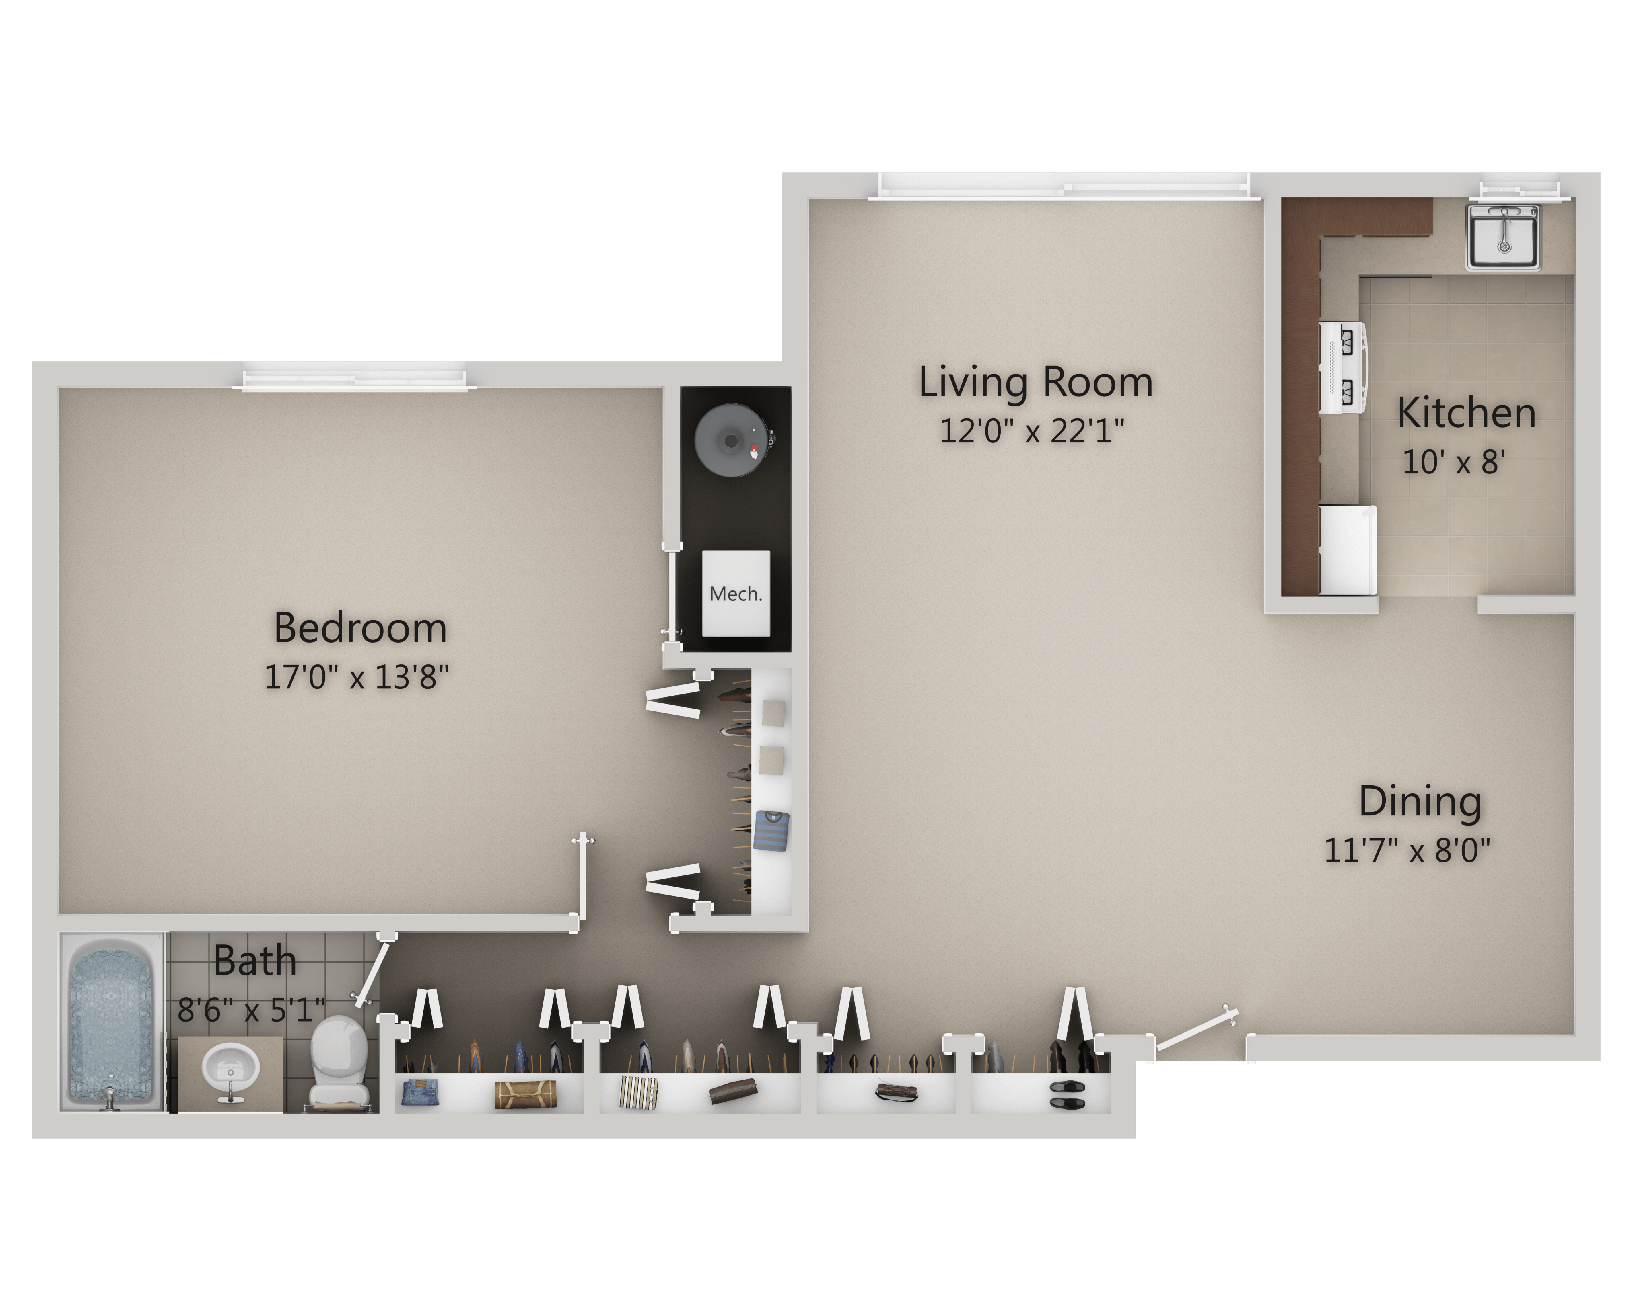 Lake Shore Park Apartments - 1 Bedroom, 1 Bath